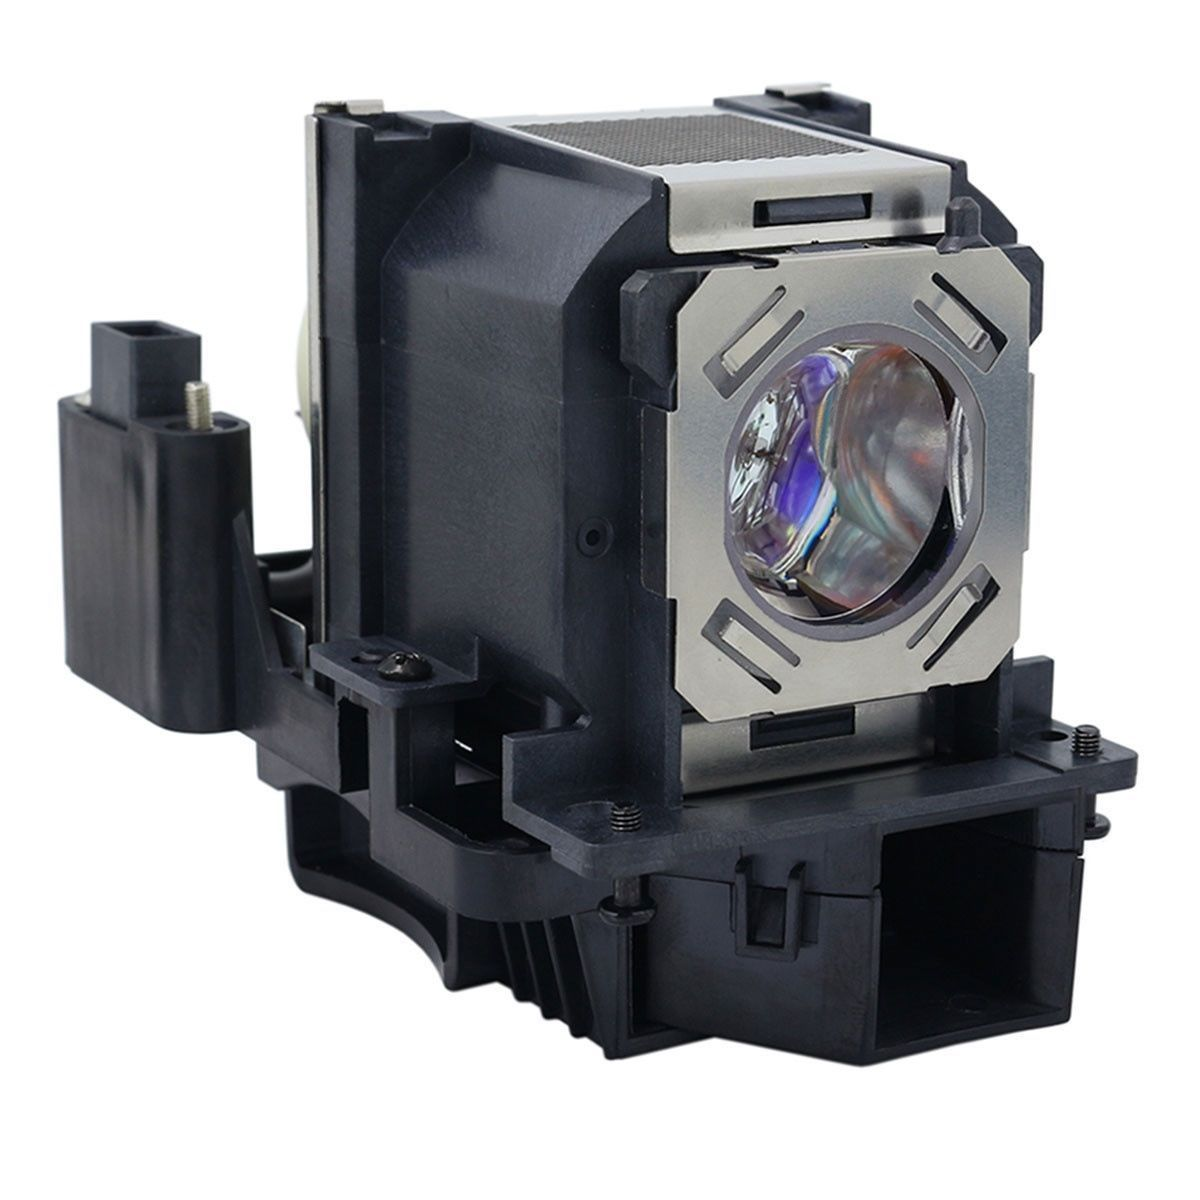 Projector Lamp Bulb LMP-C281 LMPC281 for Sony VPL-CH370 VPL-CH375 with housing replacement original projector lamp bulb with housing lmp f280 for sony vpl fh60 vpl fh60w vpl fh60b vpl f530w vpl f535h